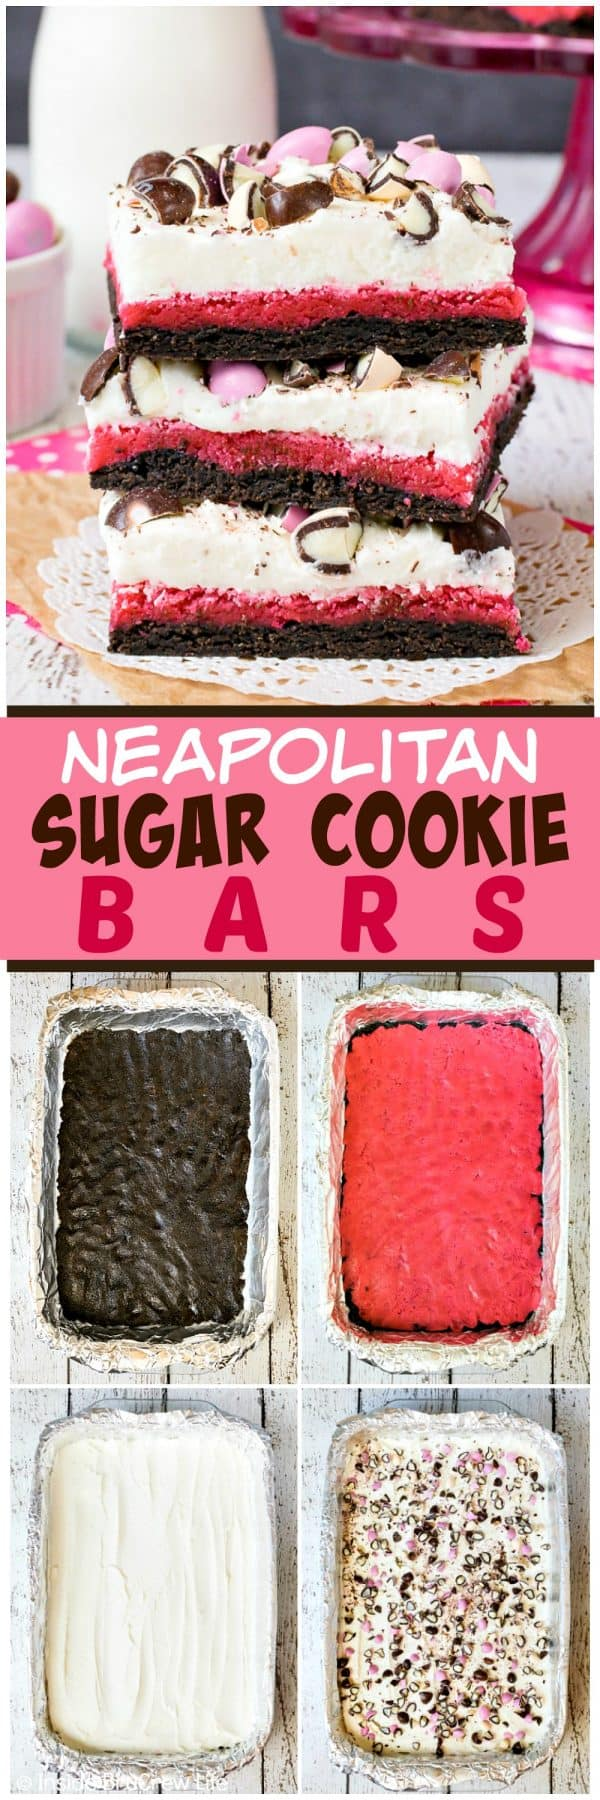 Neapolitan Sugar Cookie Bars - layers of chocolate and strawberry cookies topped with vanilla frosting and candies make these a fun dessert. Great recipe to make for parties and picnics. #cookies #chocolate #strawberry #vanilla #sugarcookies #easydesserts #barcookies